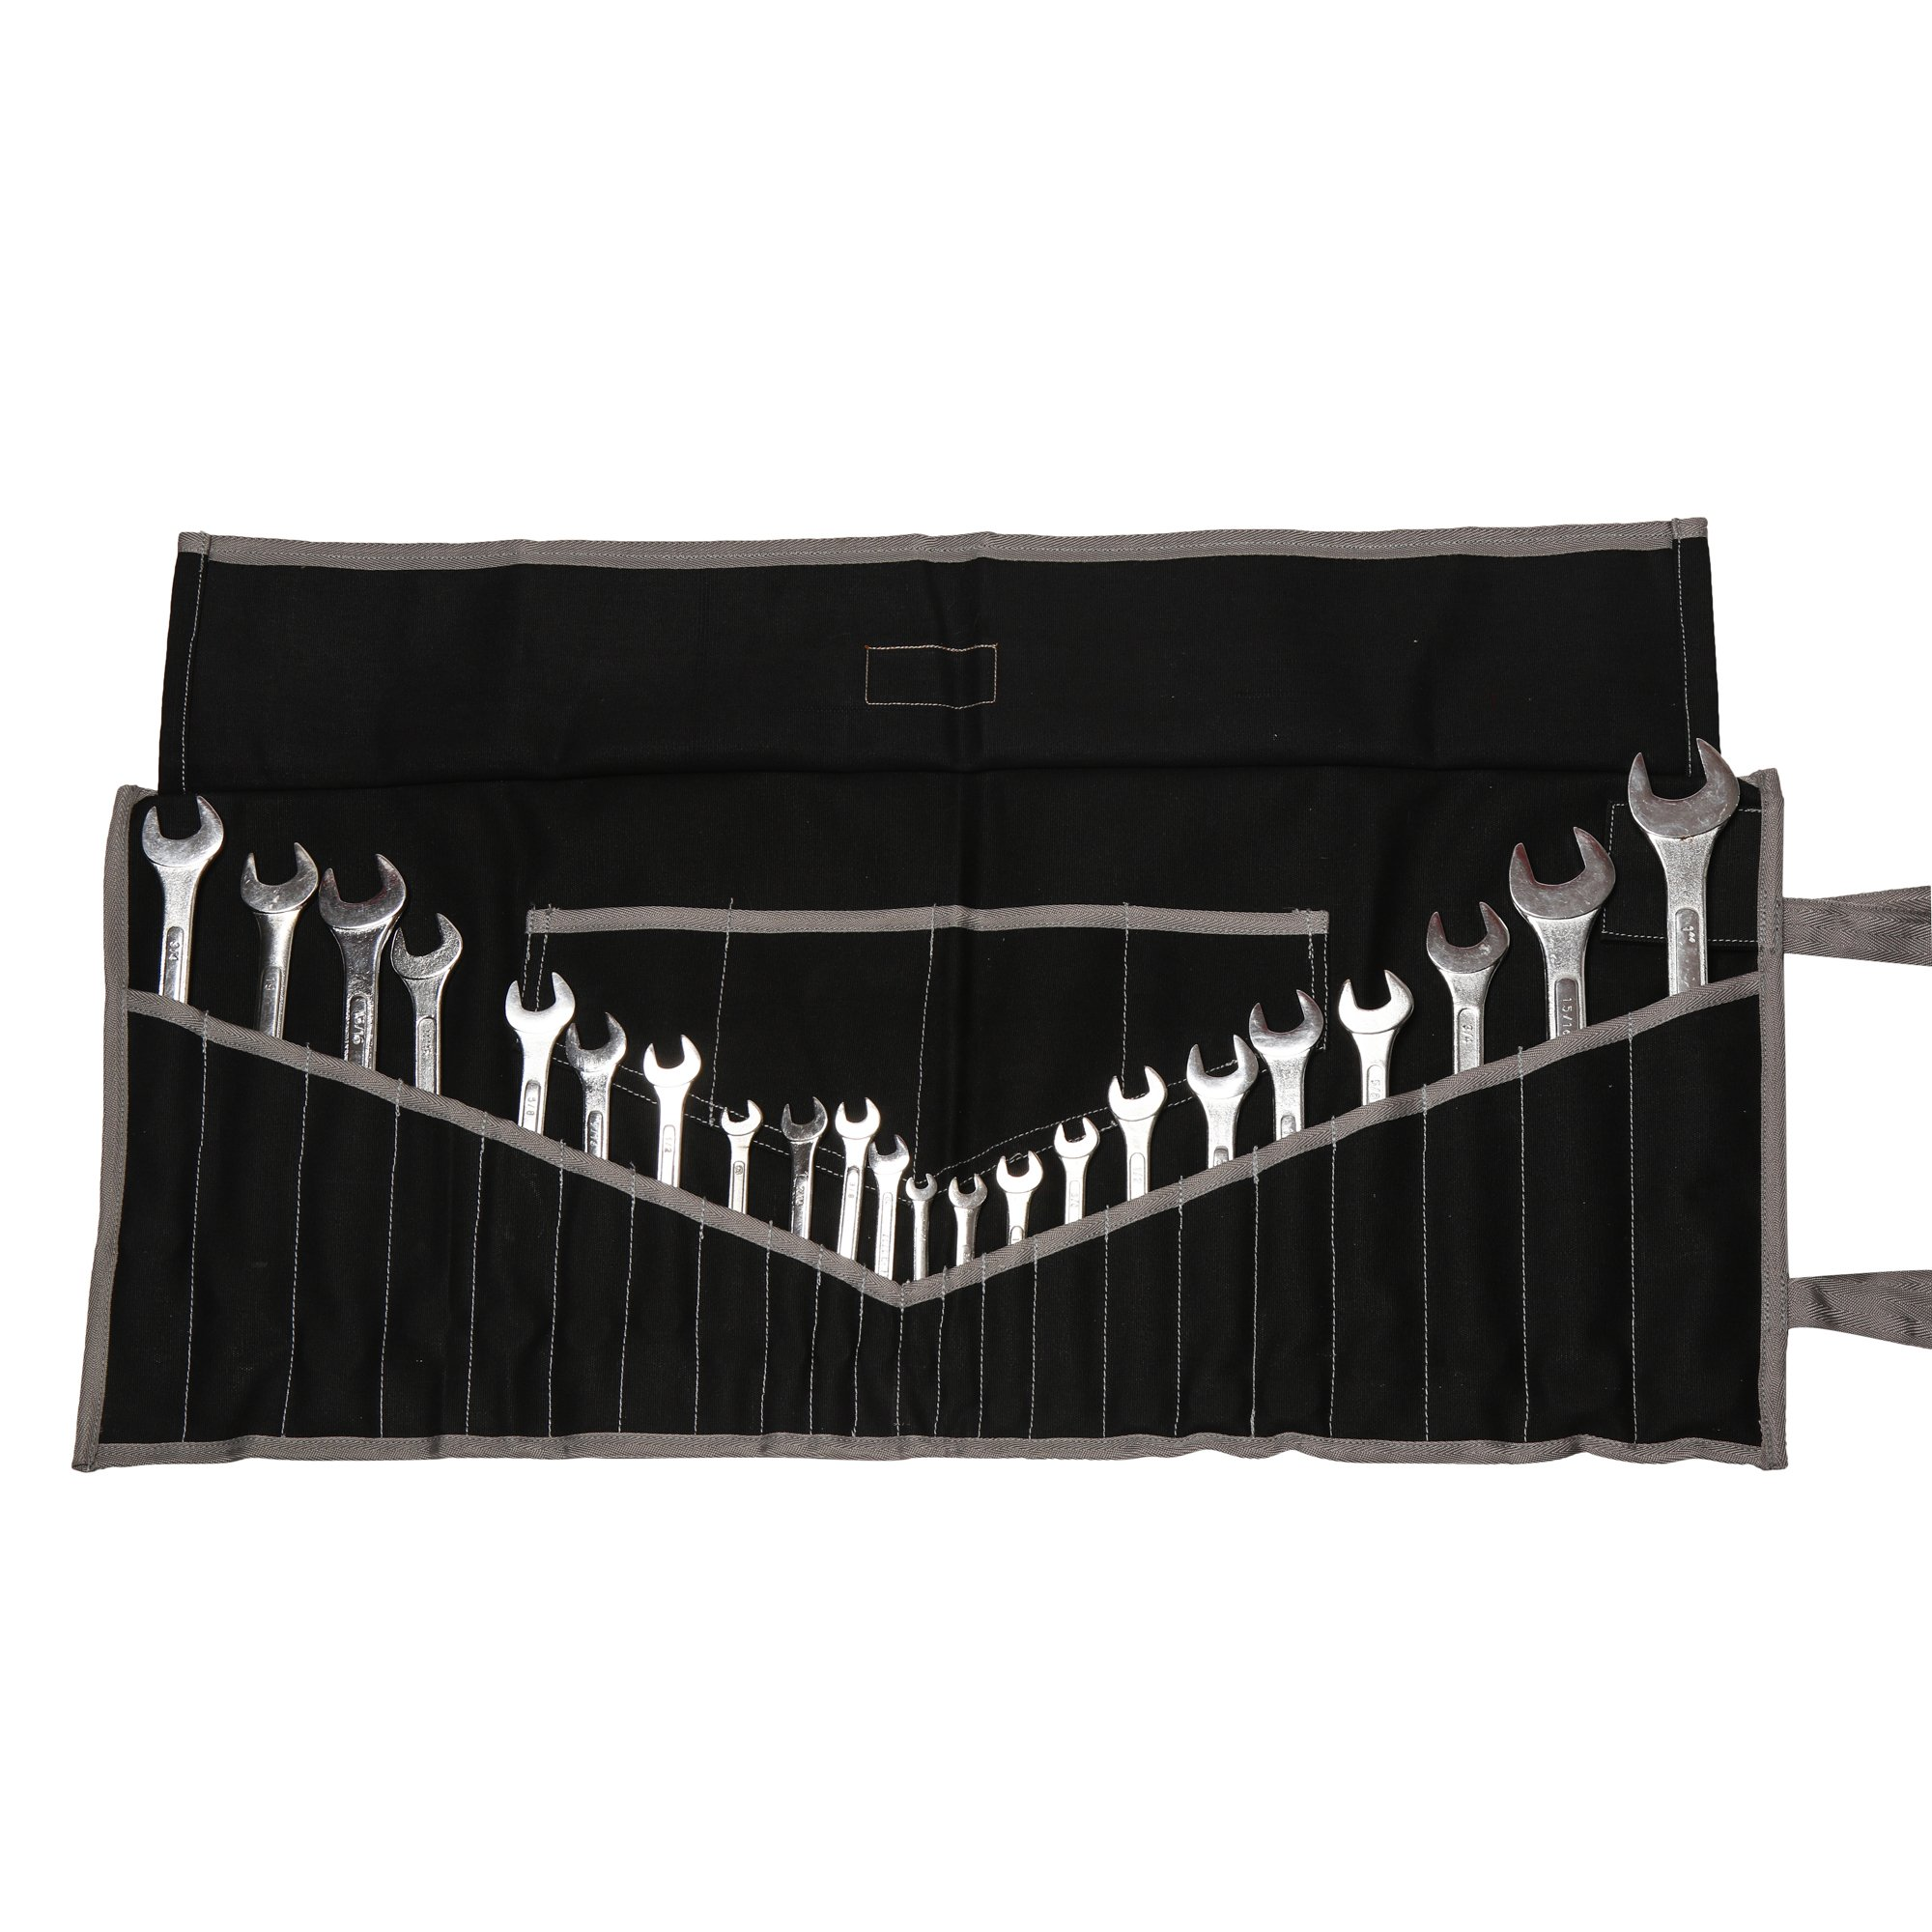 Bull Tools BT 1732 Dyed 100% Cotton 15 Oz. Heavy Weight Duck Canvas Wrench & Tool Roll Pouch Bag 22+4 Pocket Coal Black